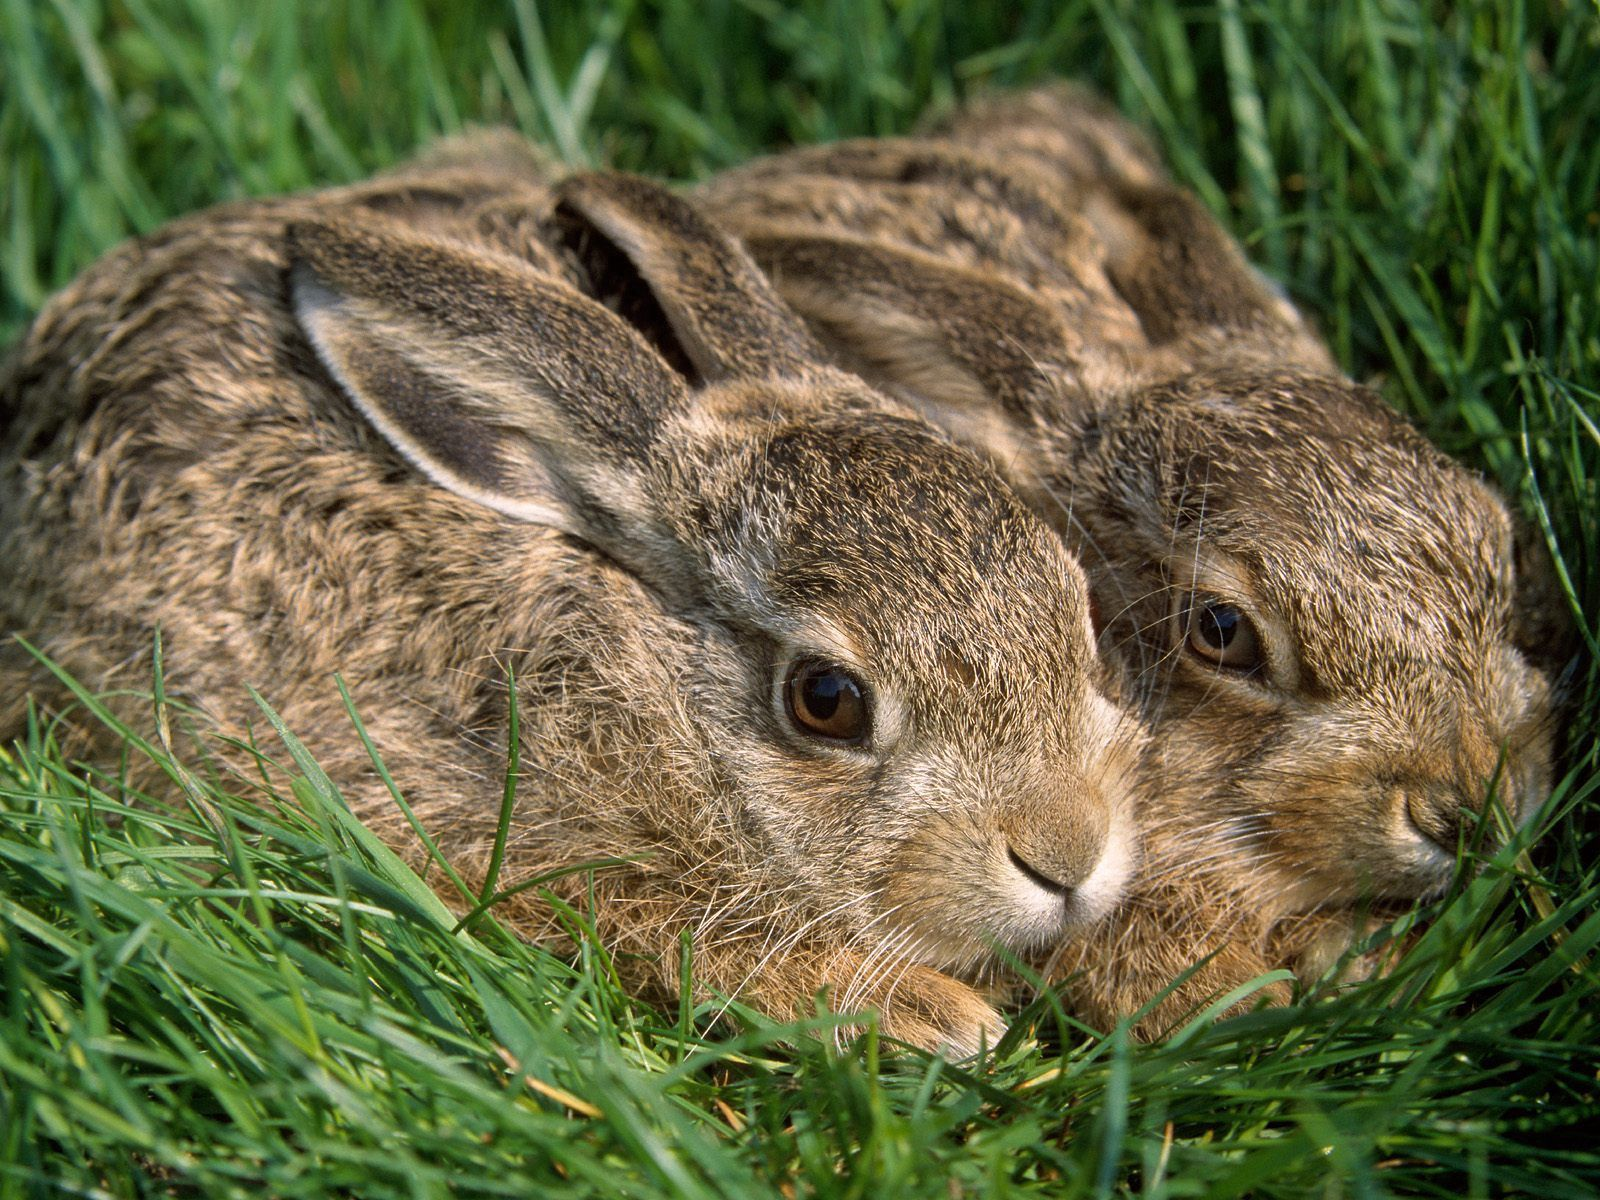 128287 download wallpaper Animals, Grass, Rabbits, Couple, Pair, Hide, Fright screensavers and pictures for free